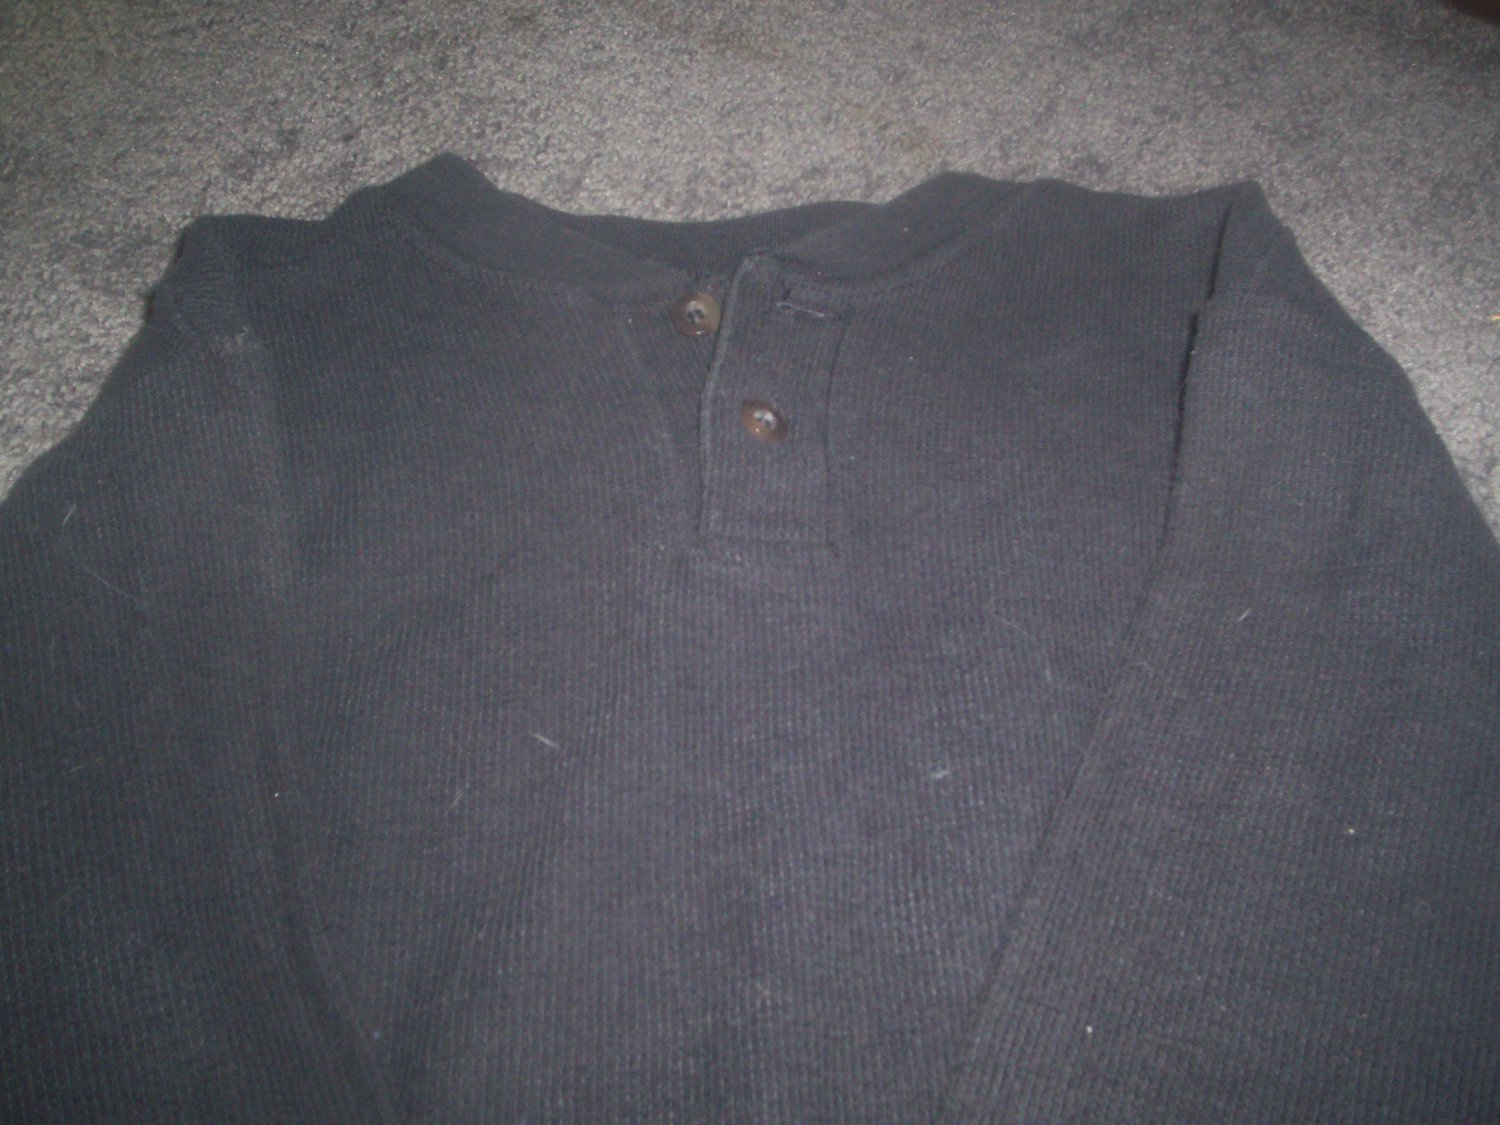 Boy's Thermal Shirts Faded Glory Size Medium